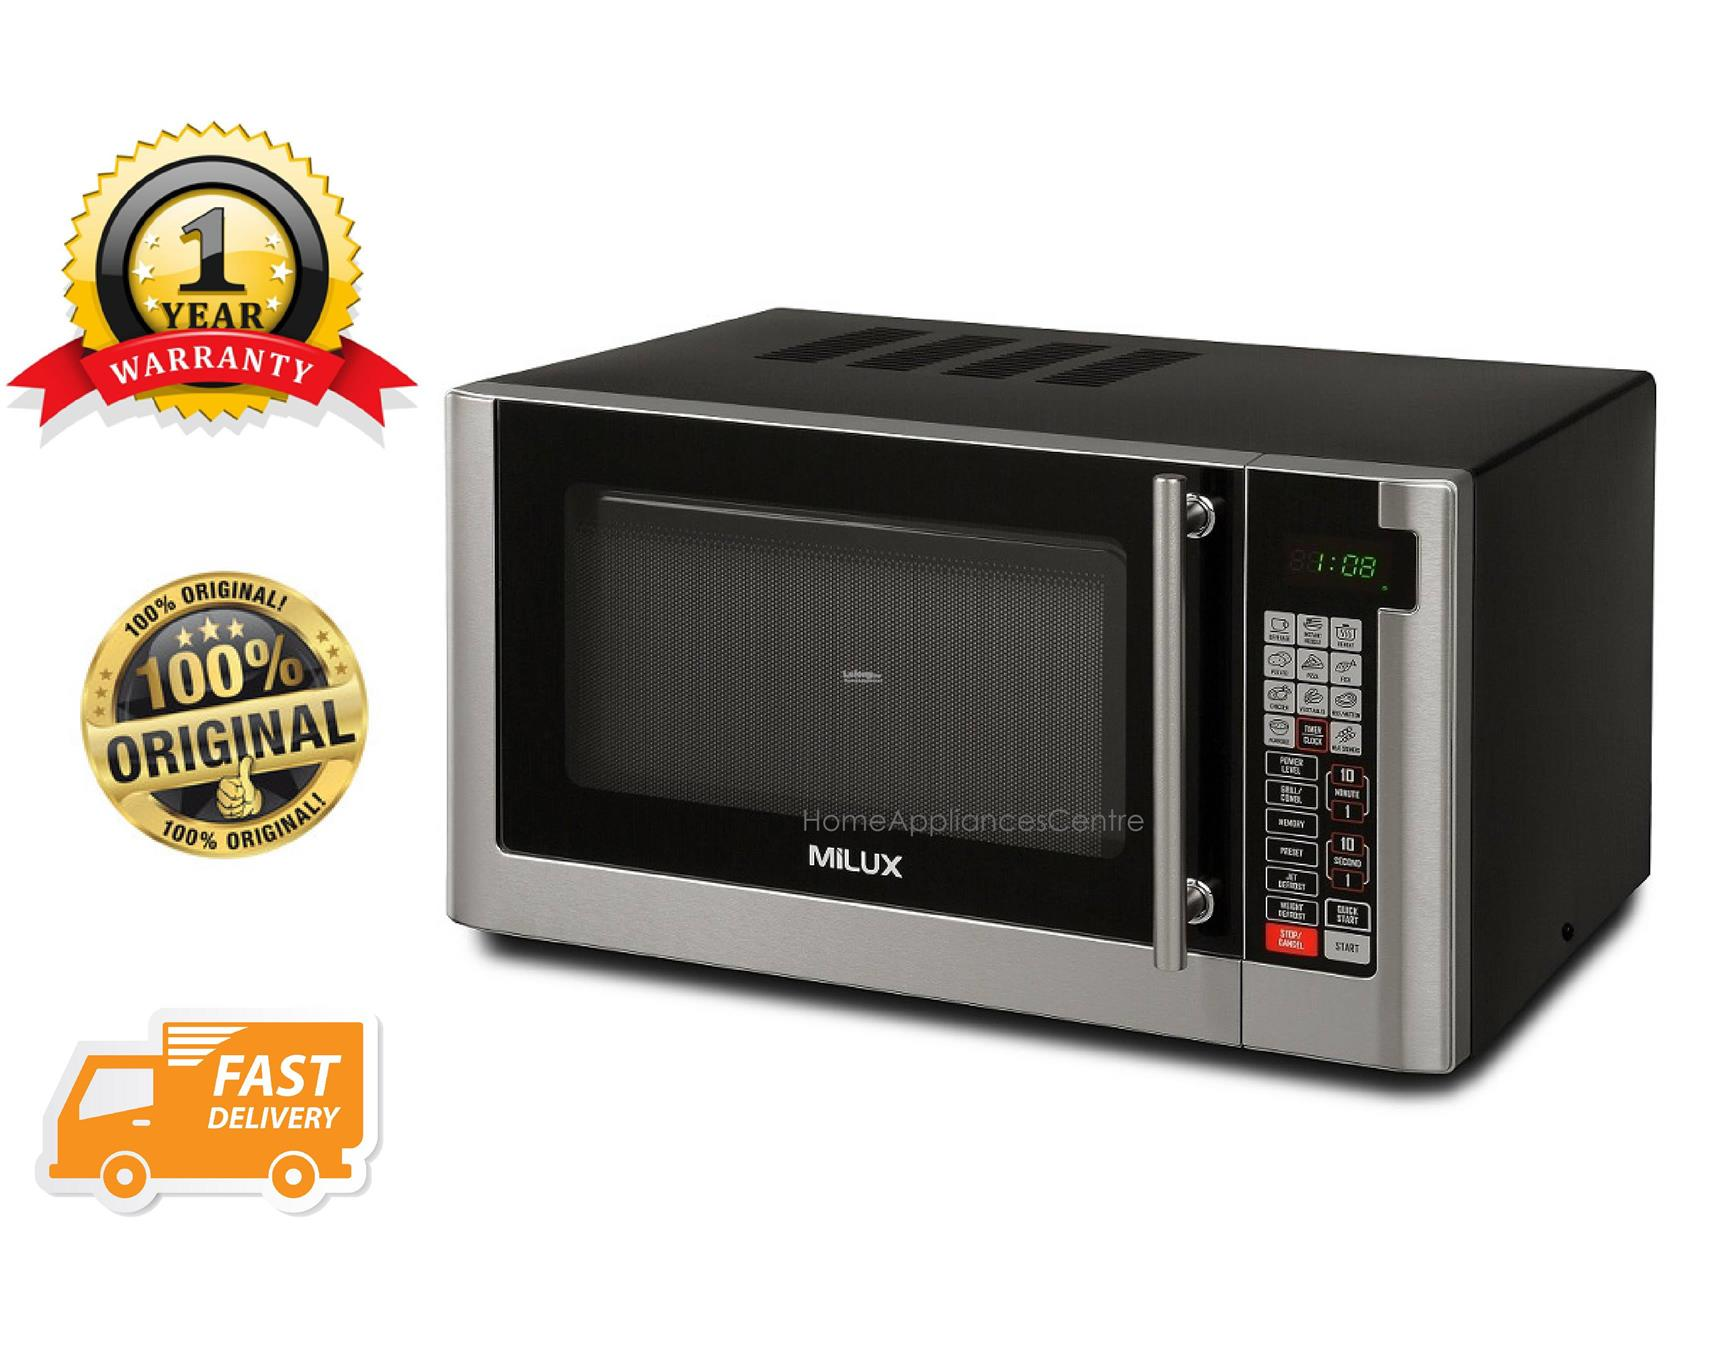 Milux 30l Large Capacity Microwave Oven With Grill Function Mmo 5030